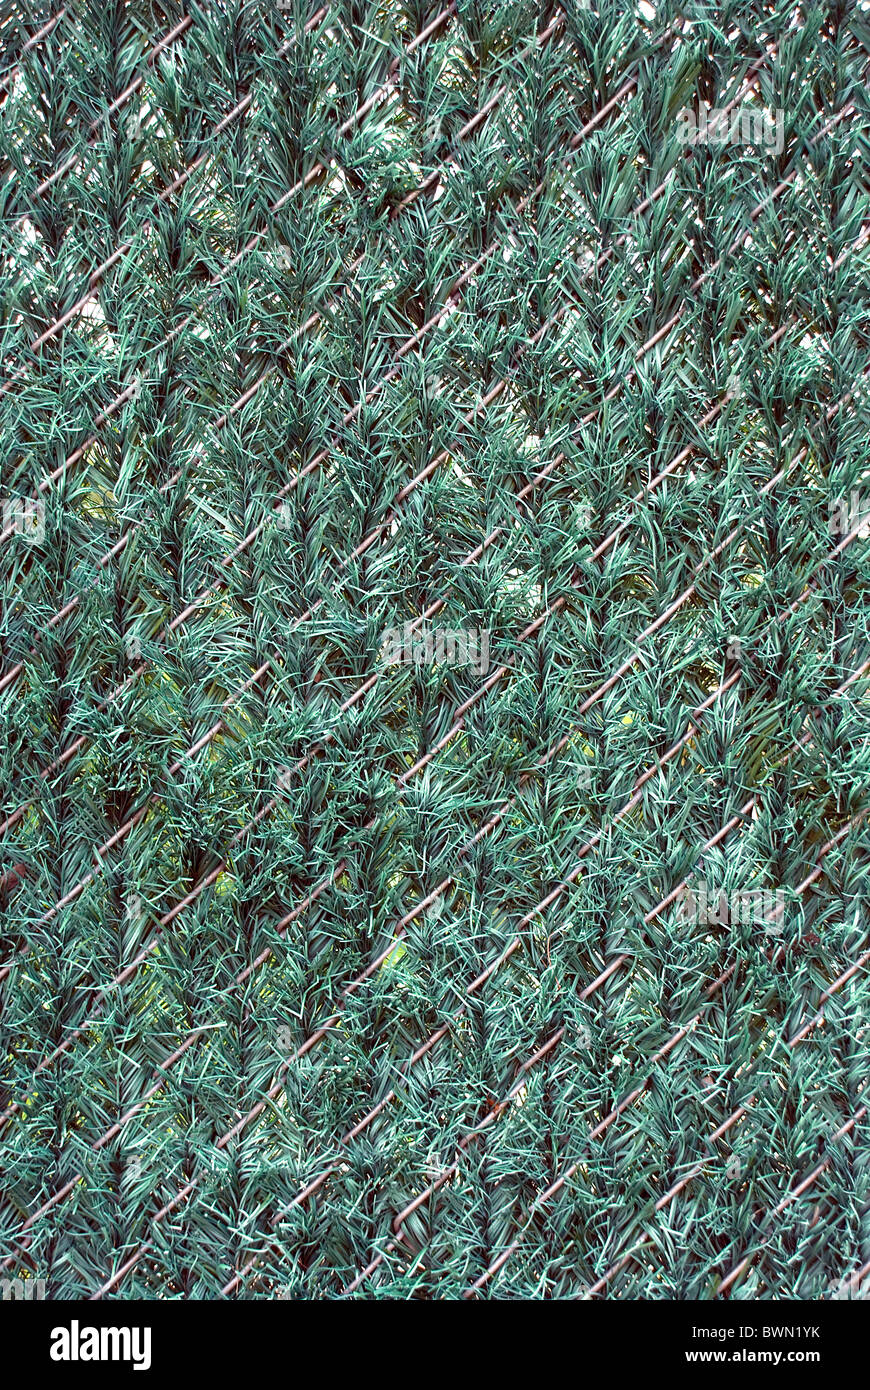 Artificial hedge fence material in chain link to